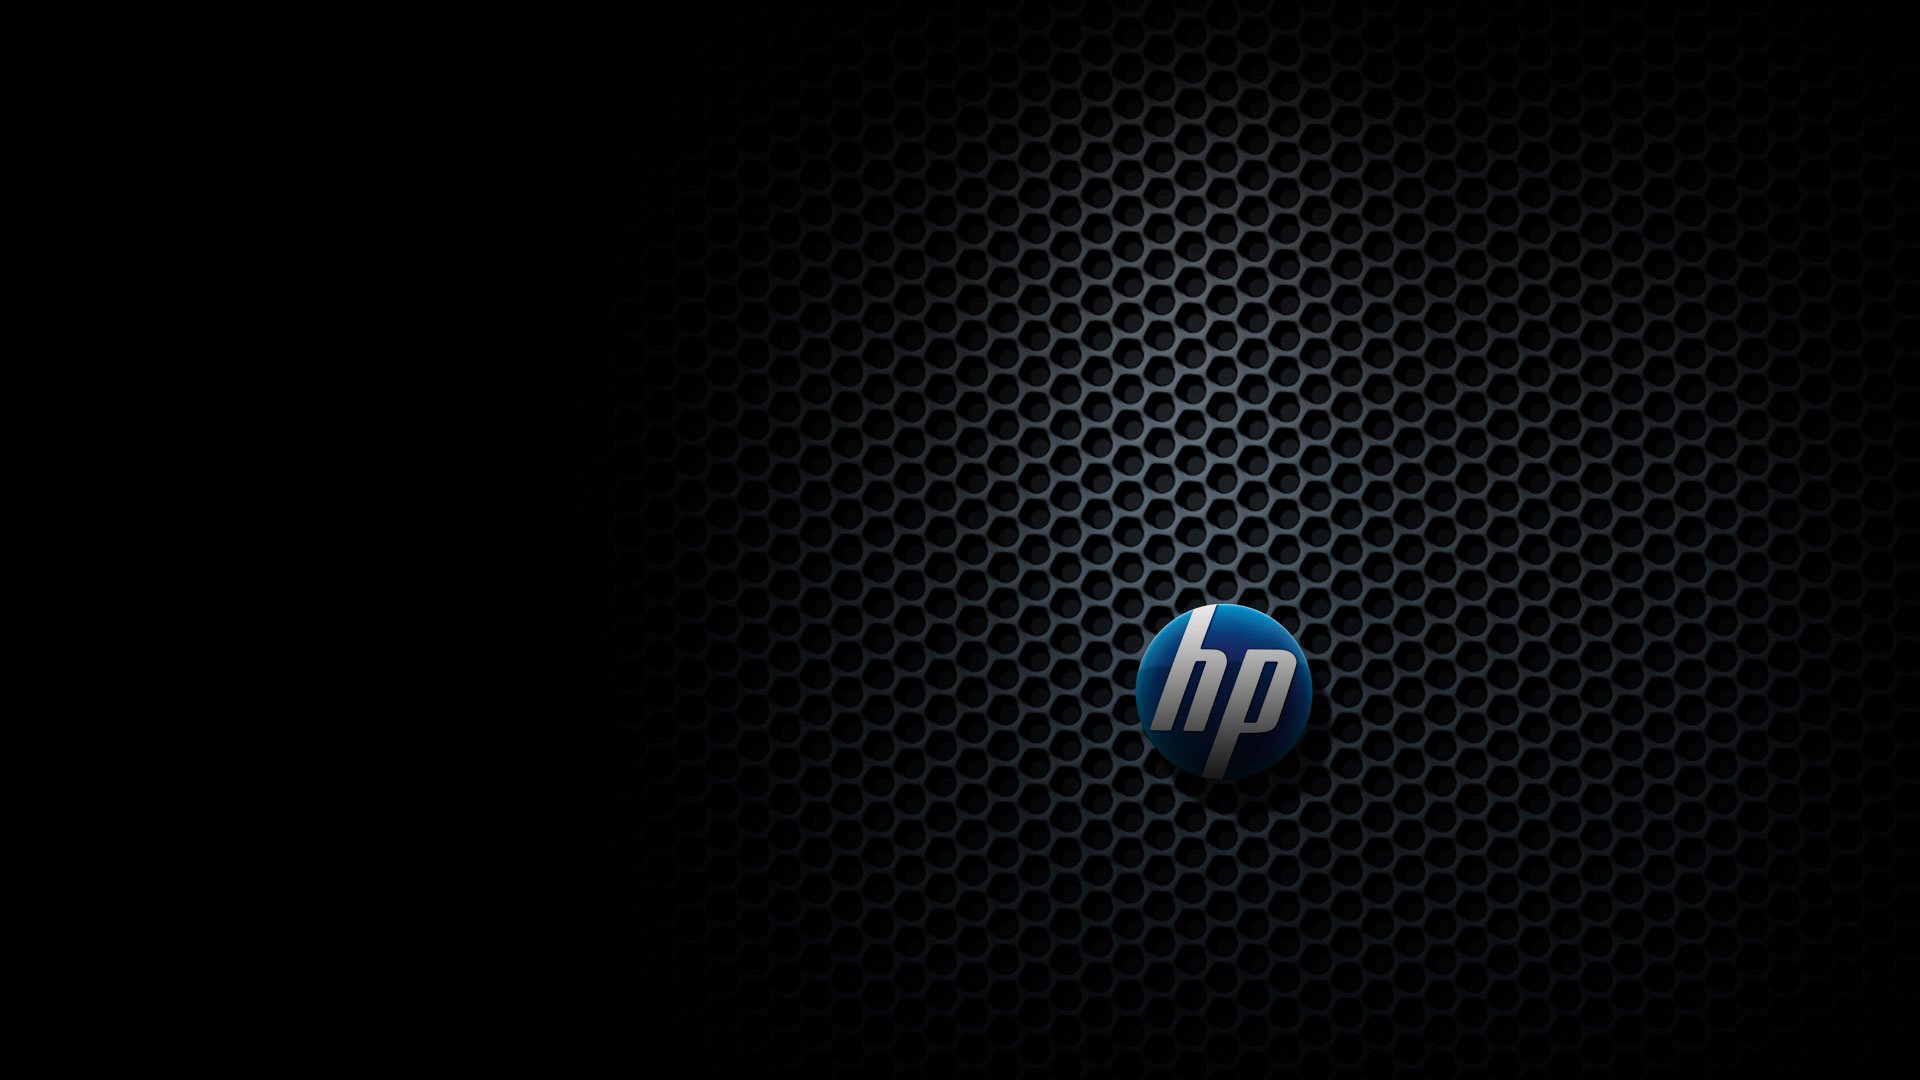 hp wallpapers hp wallpapers hp wallpapers hp photos hp photos